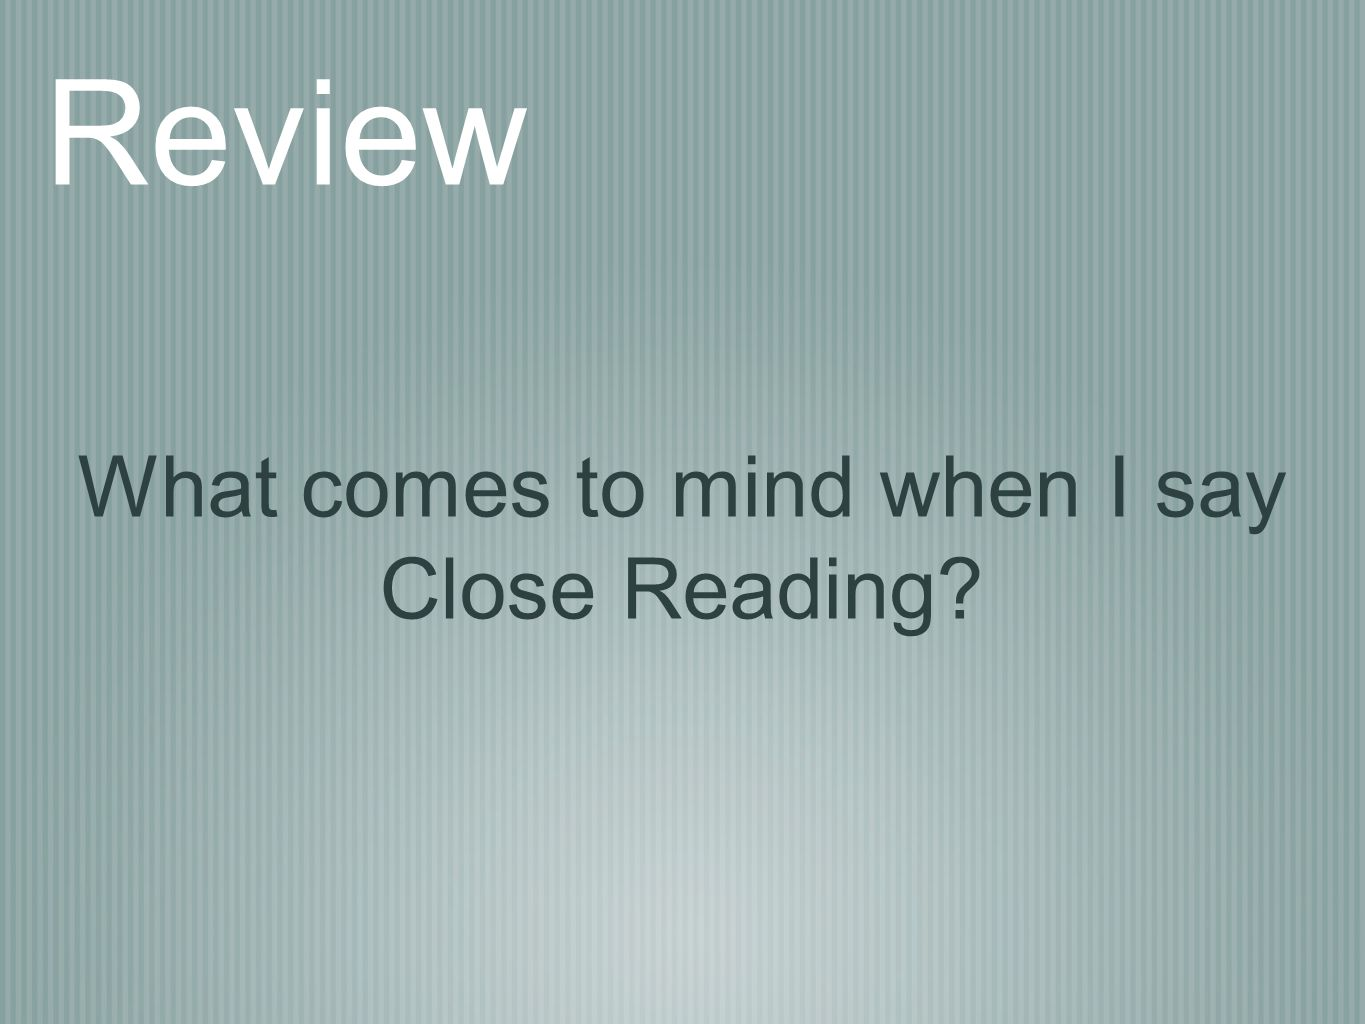 What comes to mind when I say Close Reading